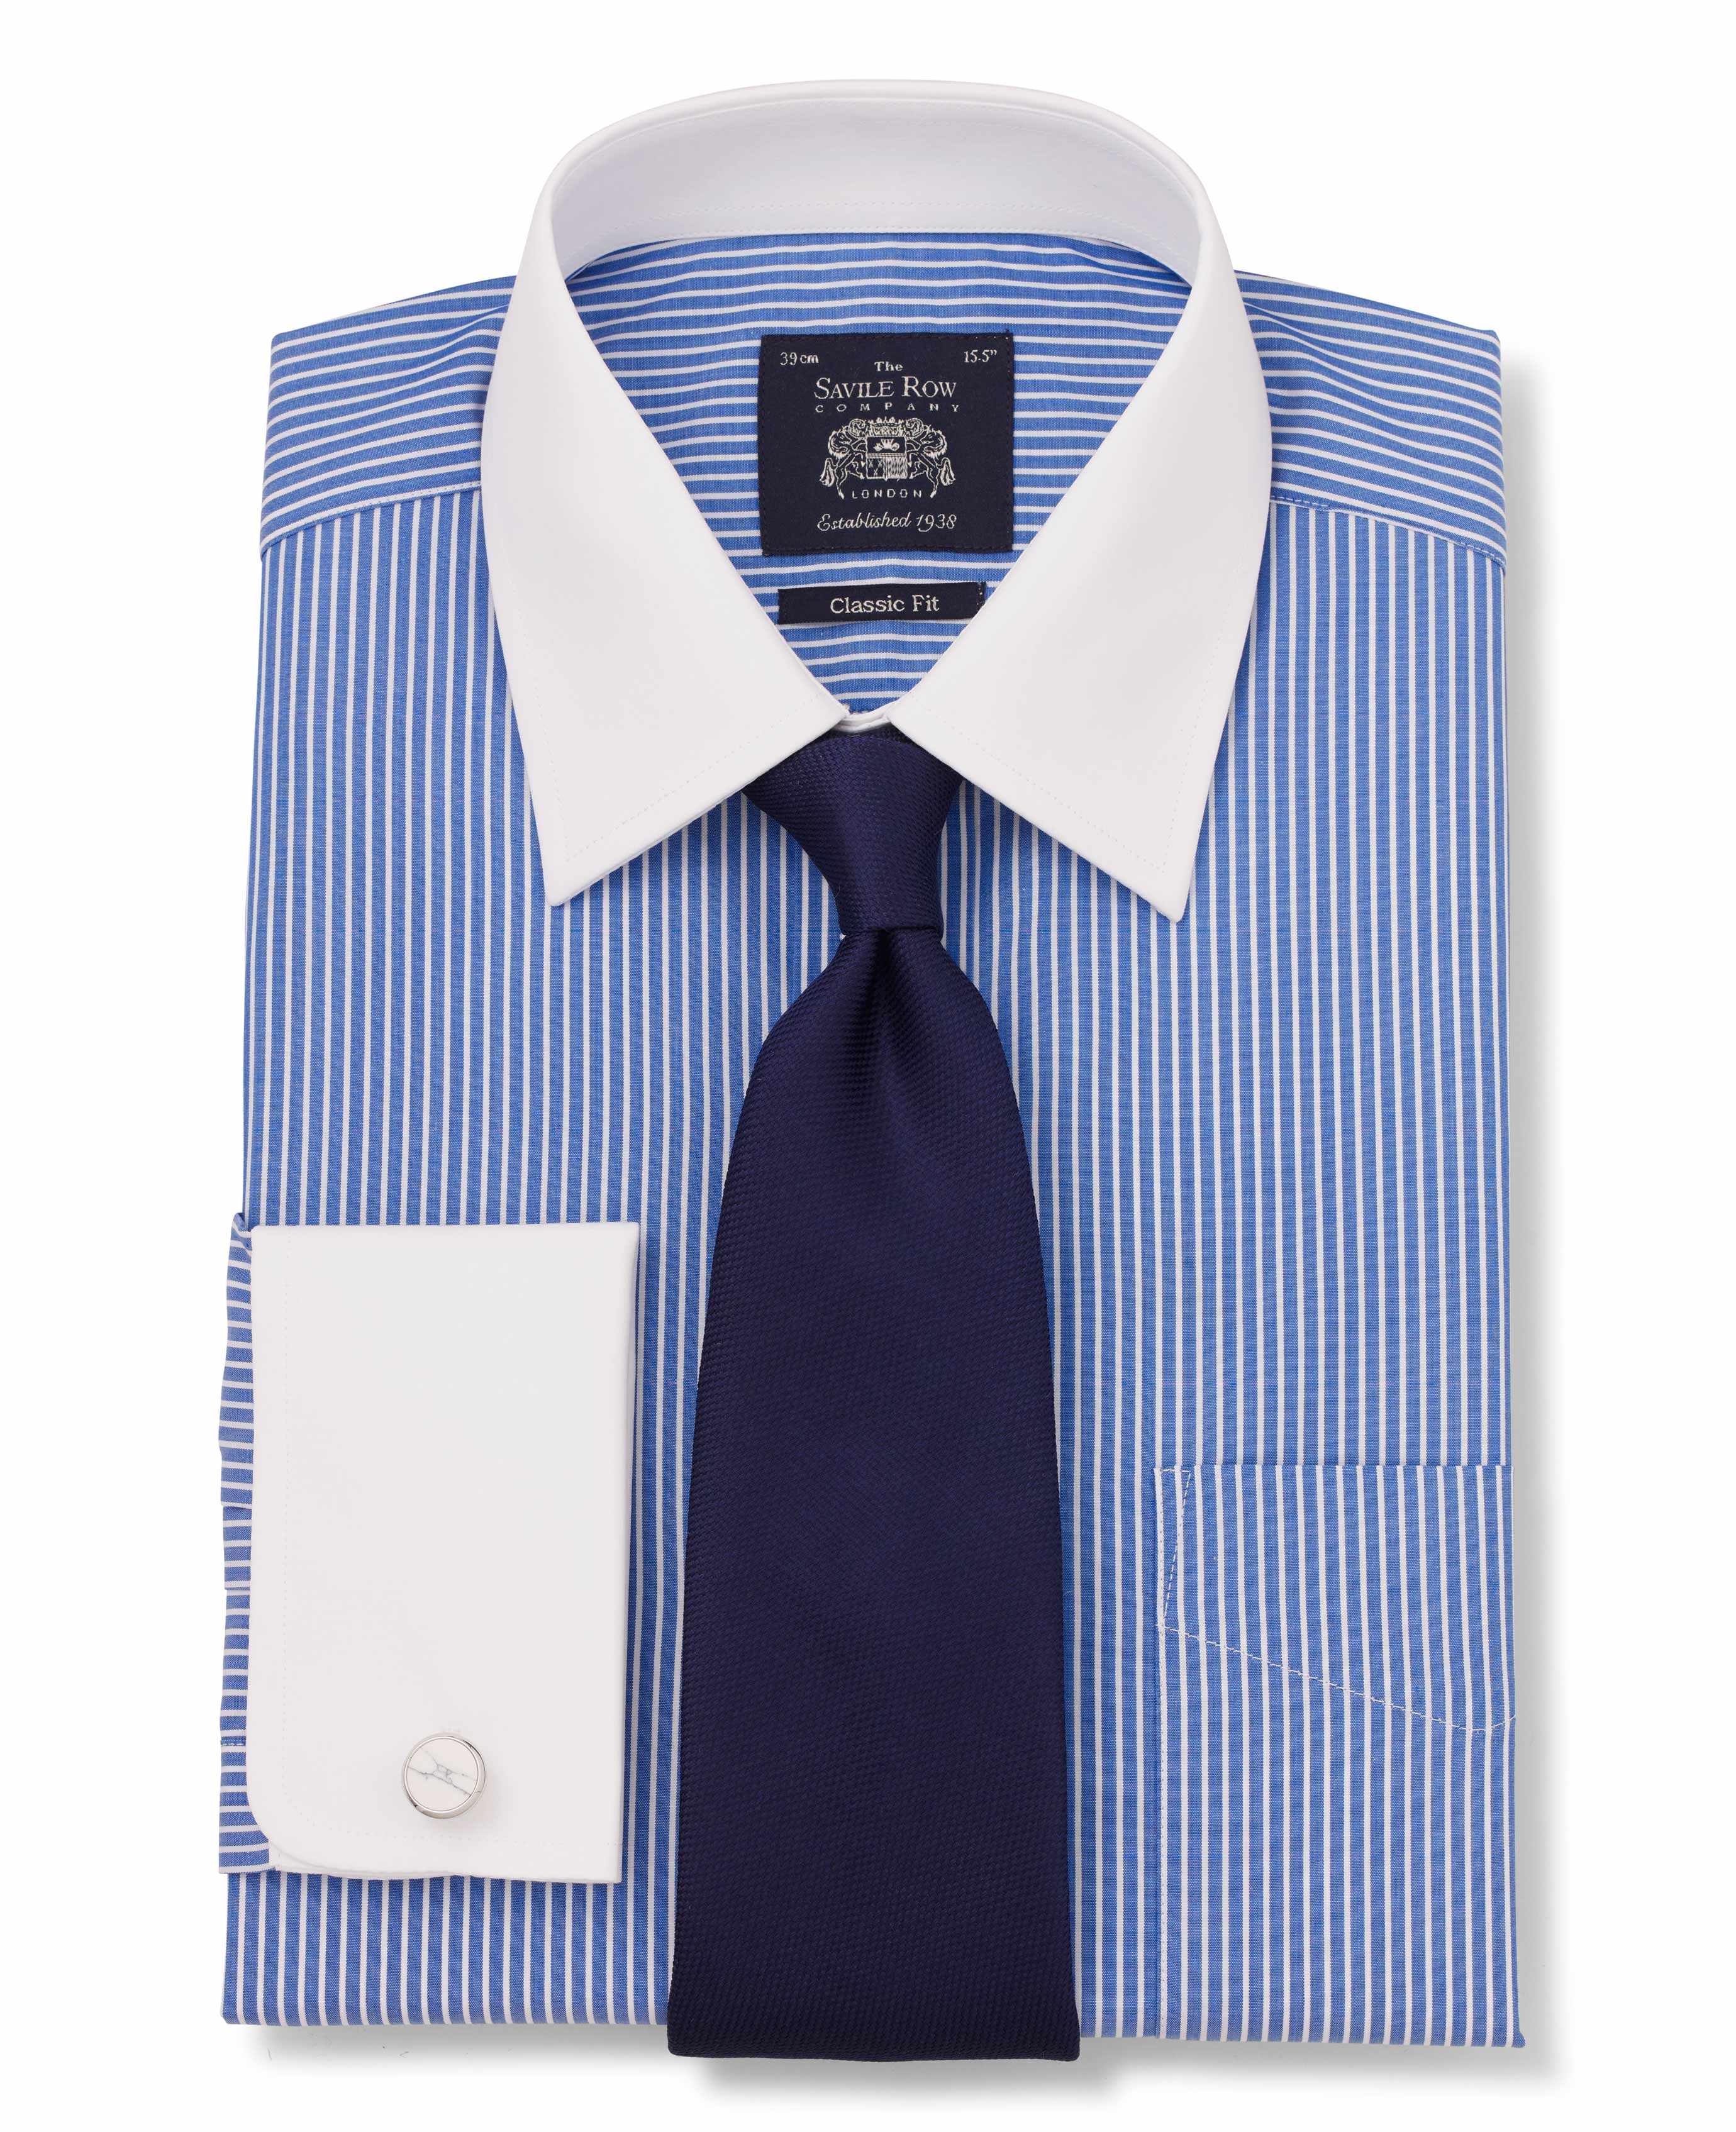 e8a820ffd5 Men's blue and white poplin reverse stripe classic fit shirt with white  contrast collar and cuffs. | Savile Row Company